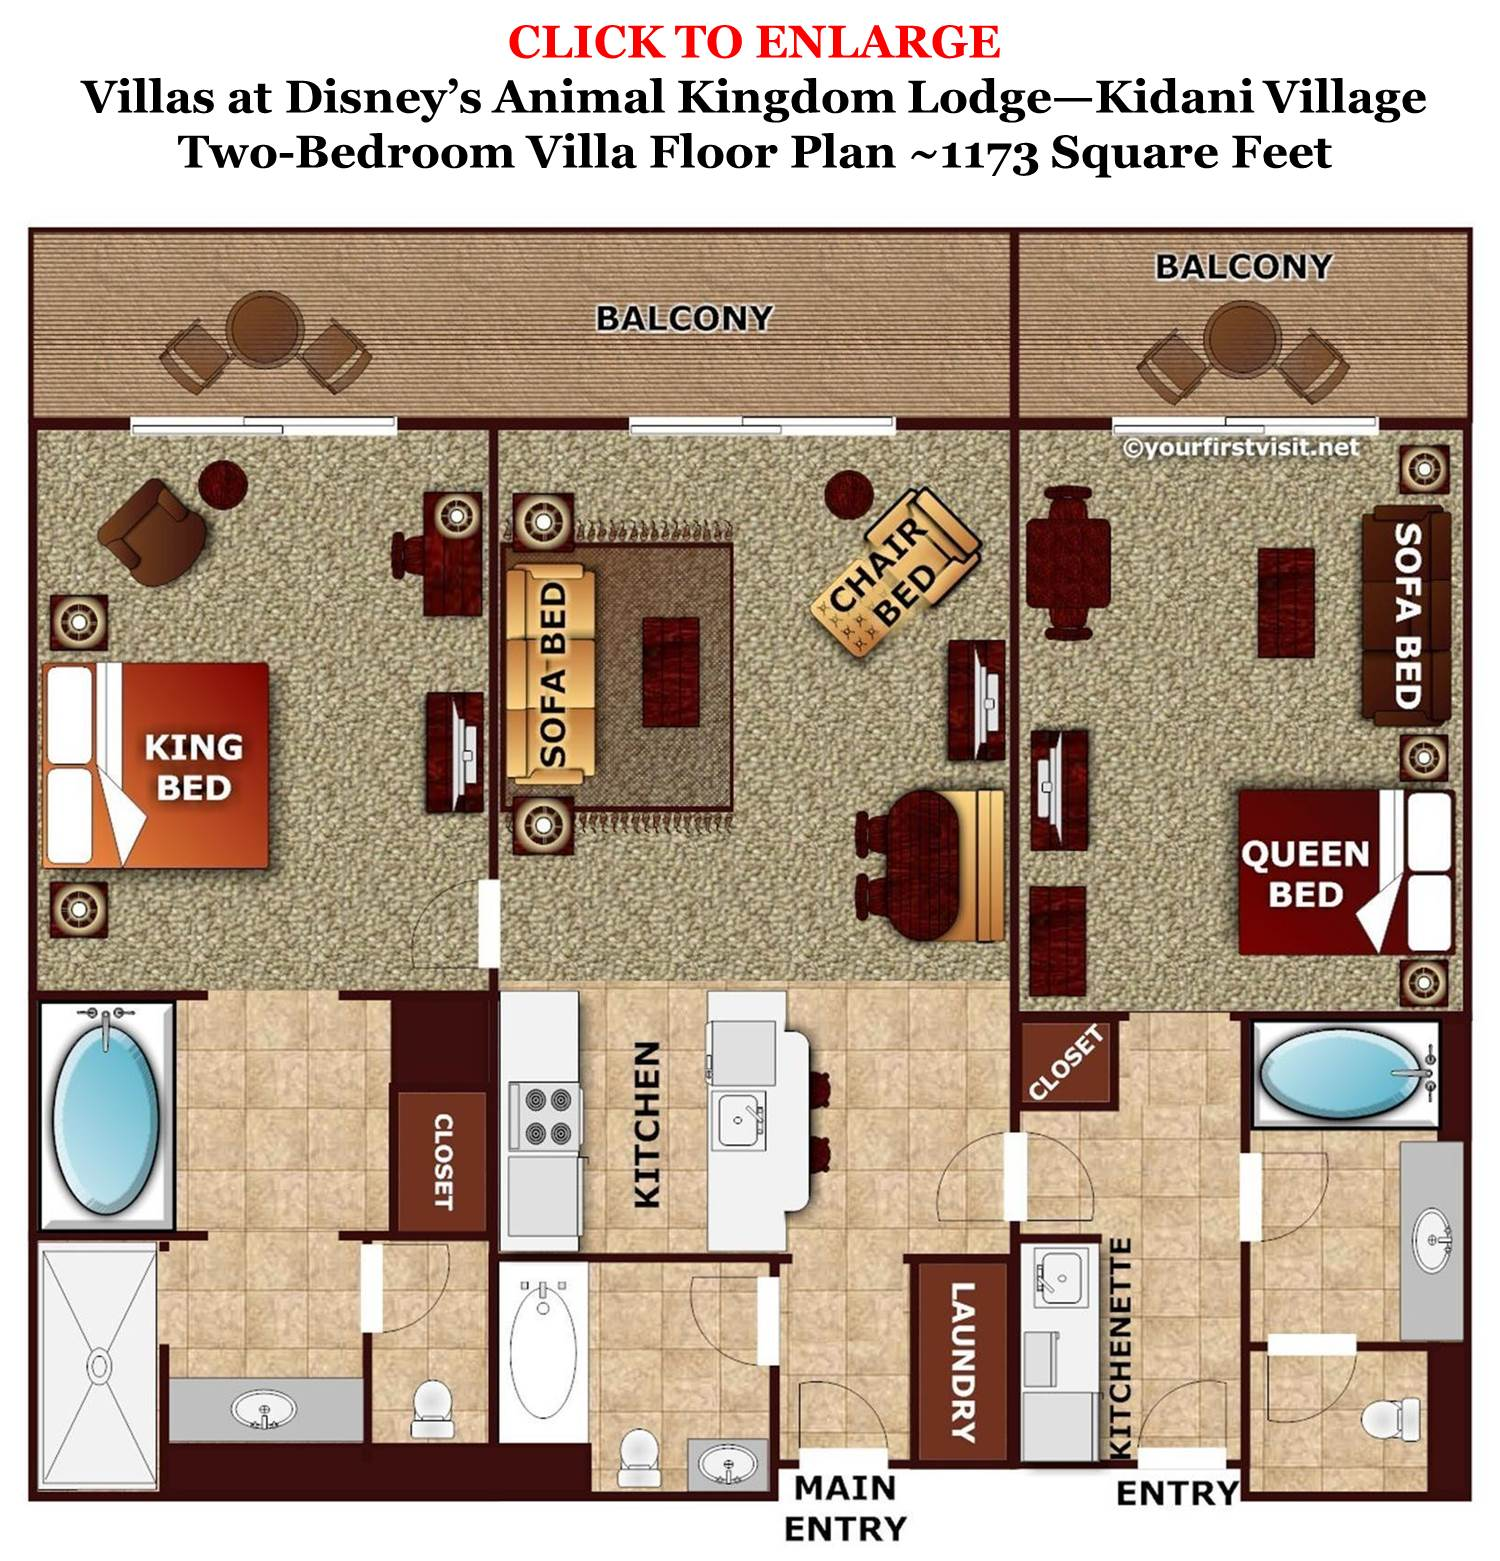 Kidani Village 2 Bedroom Villa Floor Plan Large Family Deluxe Options At Walt Disney World